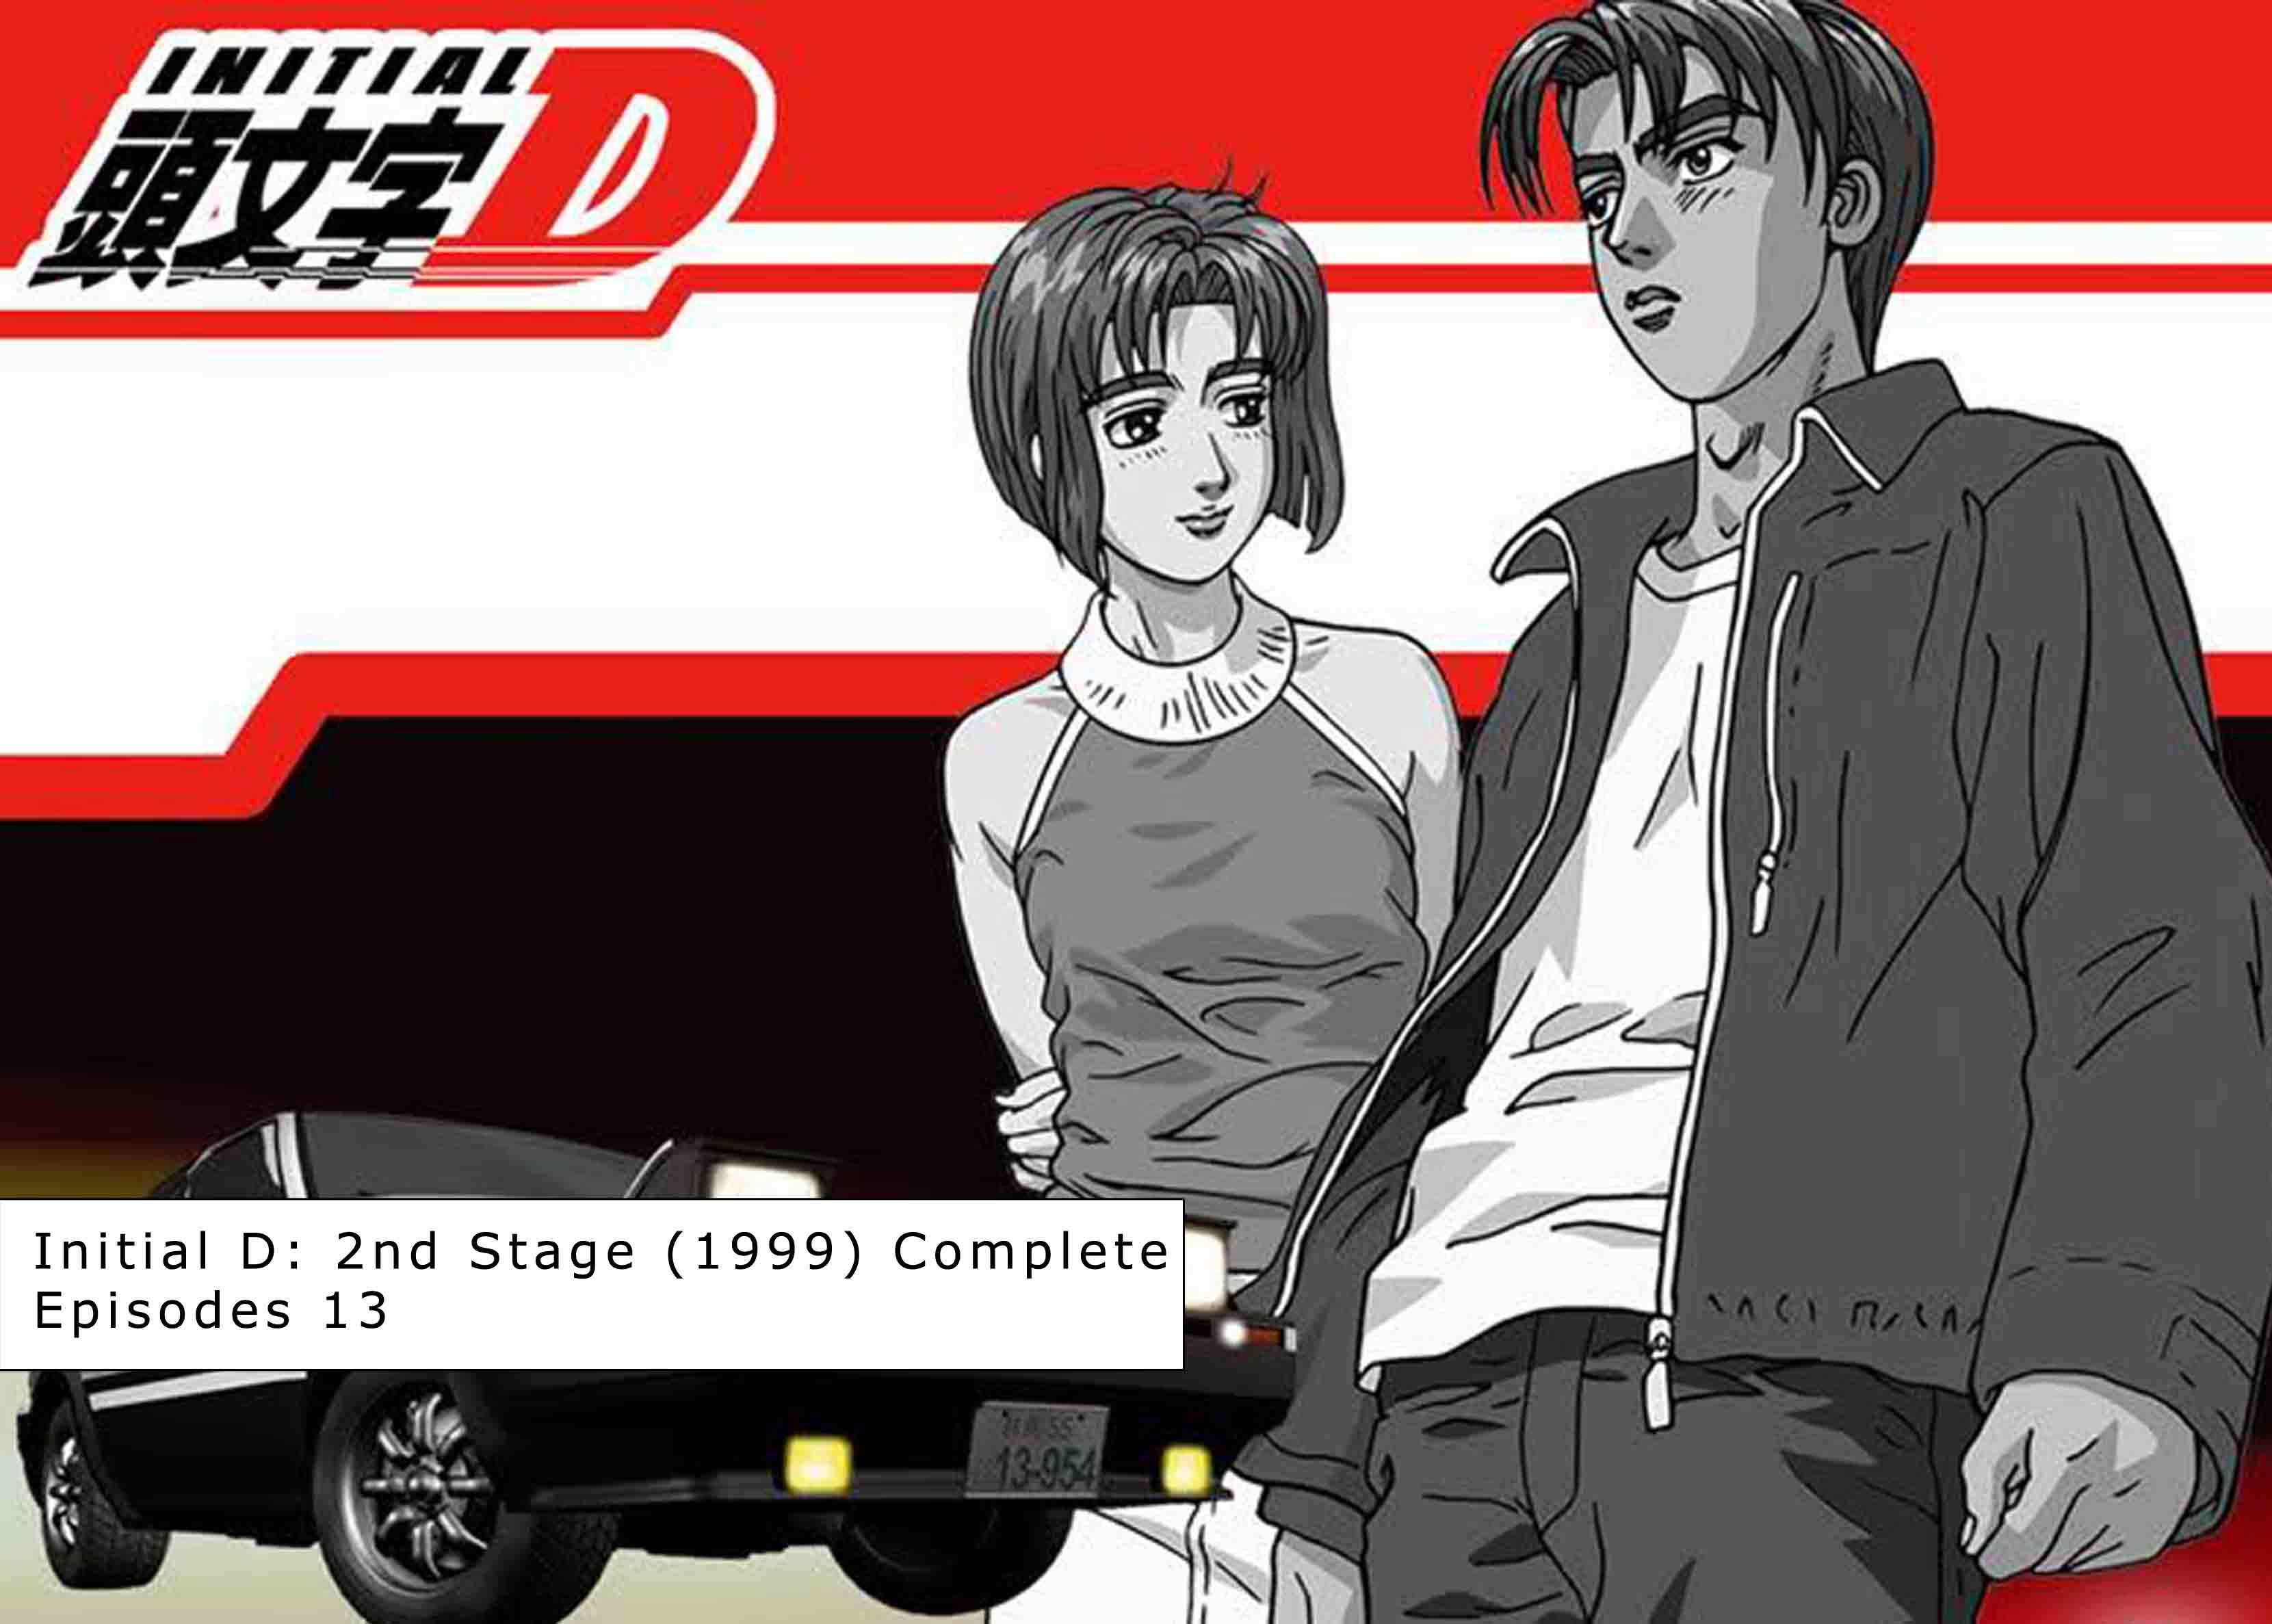 Initial D 2nd Stage Initial d fifth stage, Initial d